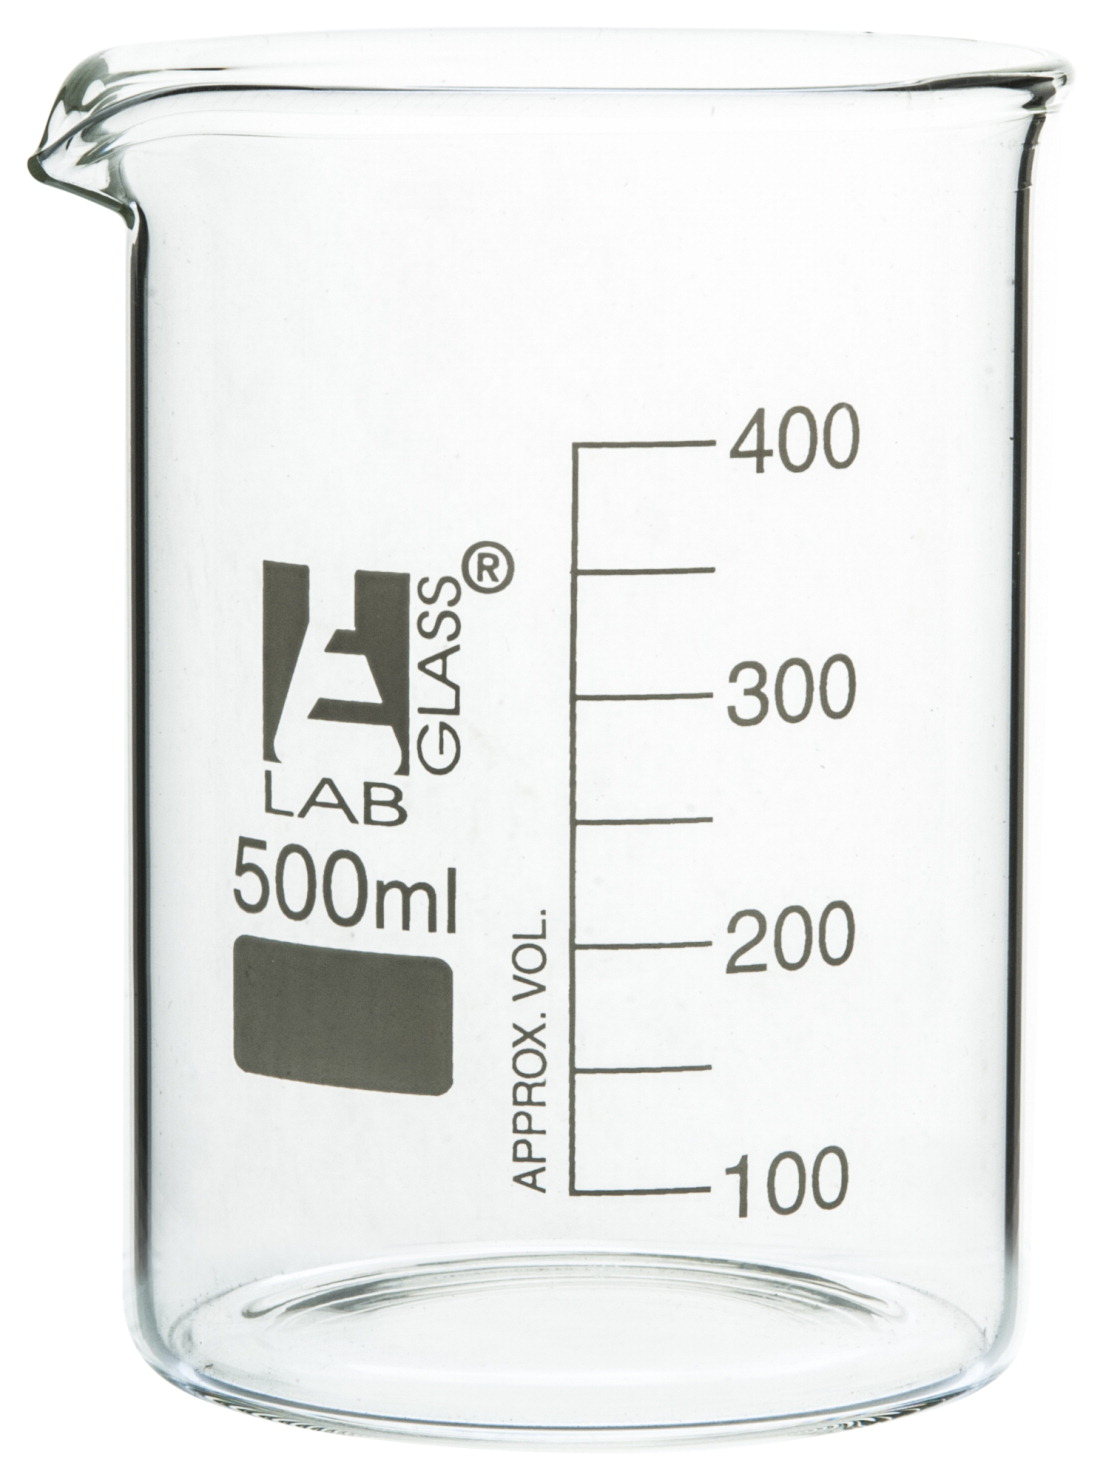 Eisco 500mL Borosilicate Glass Beaker with Spout, Low Form